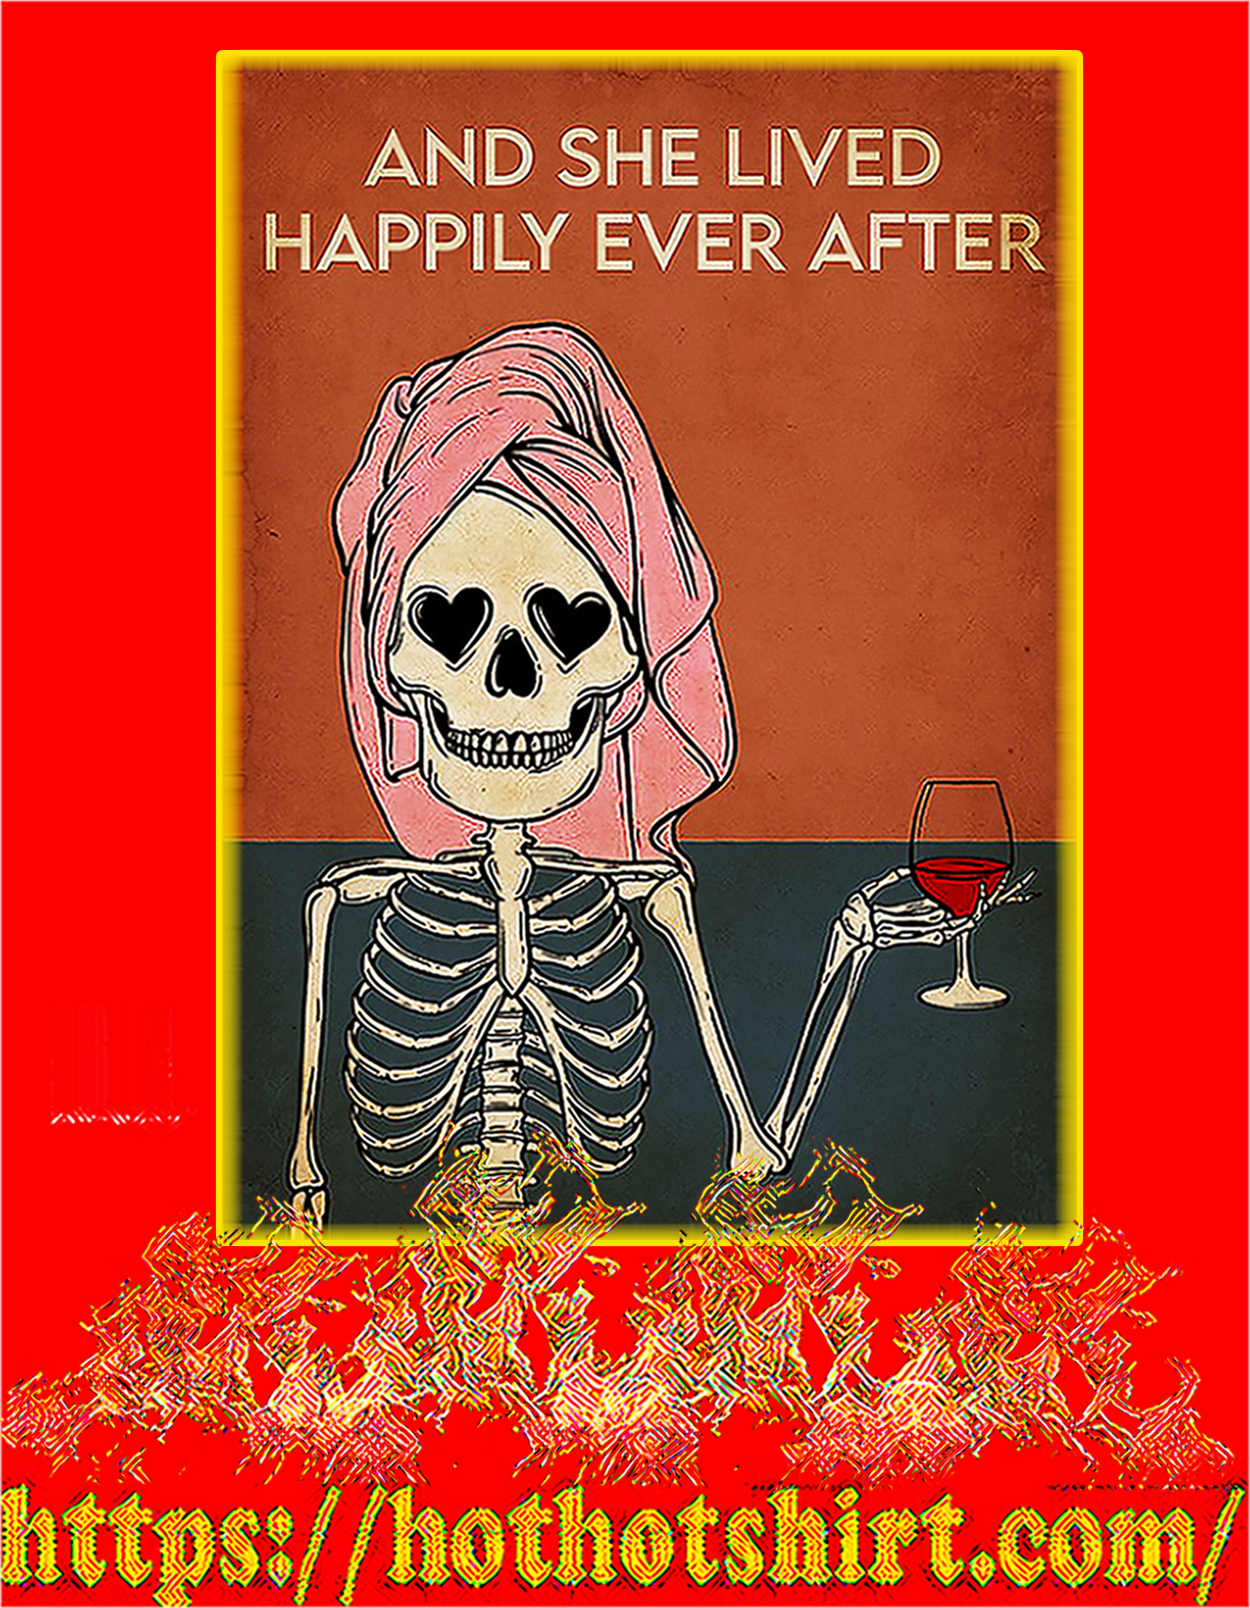 Skeleton wine And she lived happily ever after poster - A3